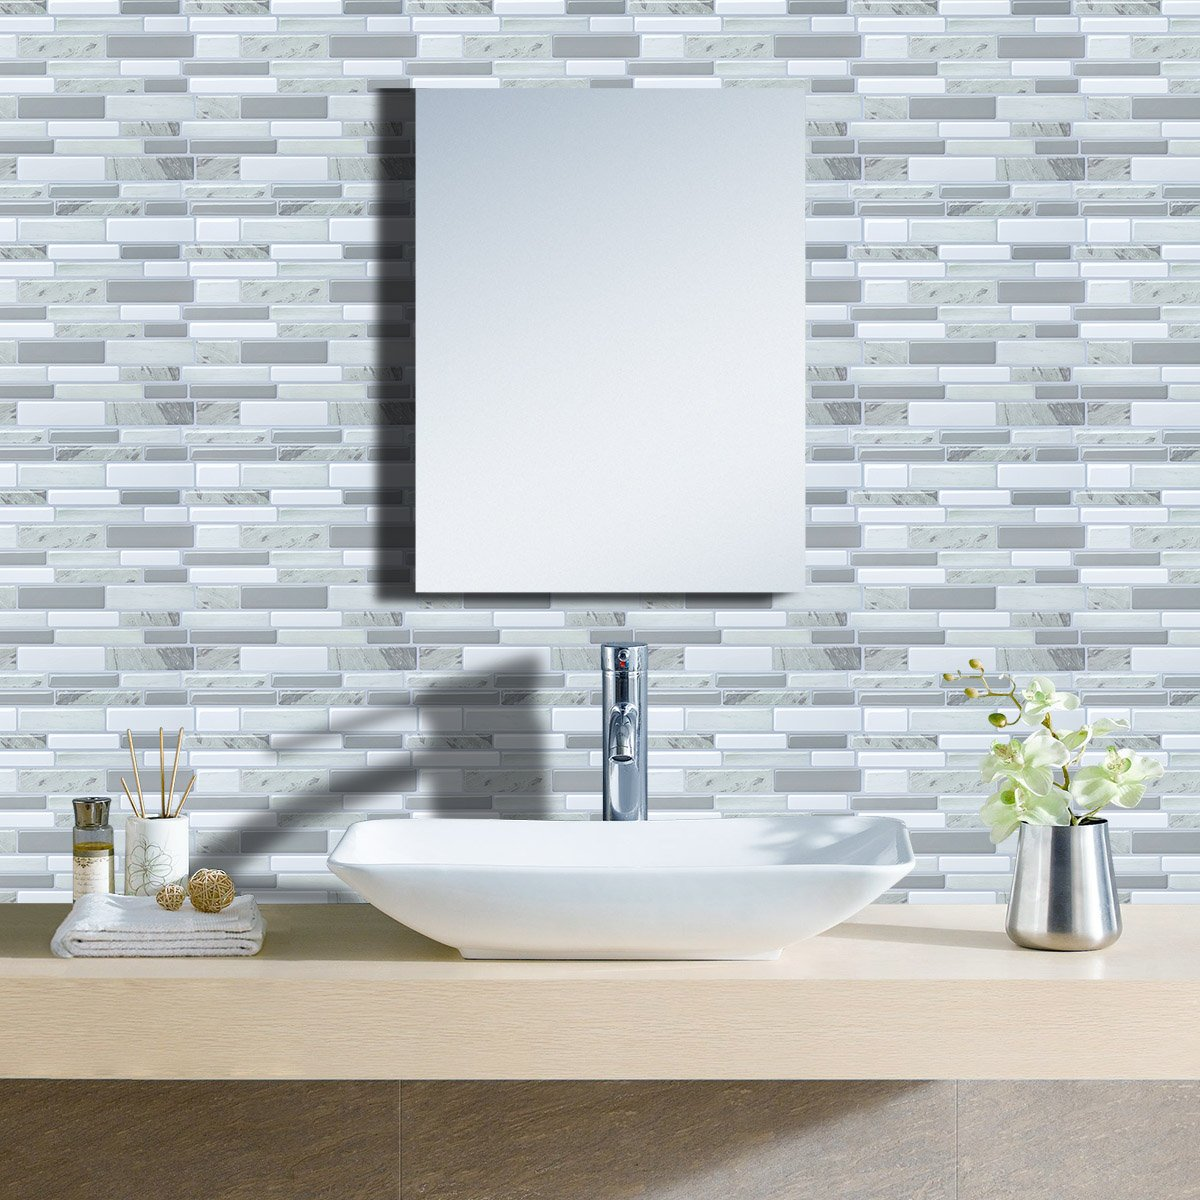 Modern Grey Peel and Stick Subway Tiles, Vinyl Backsplash for ...